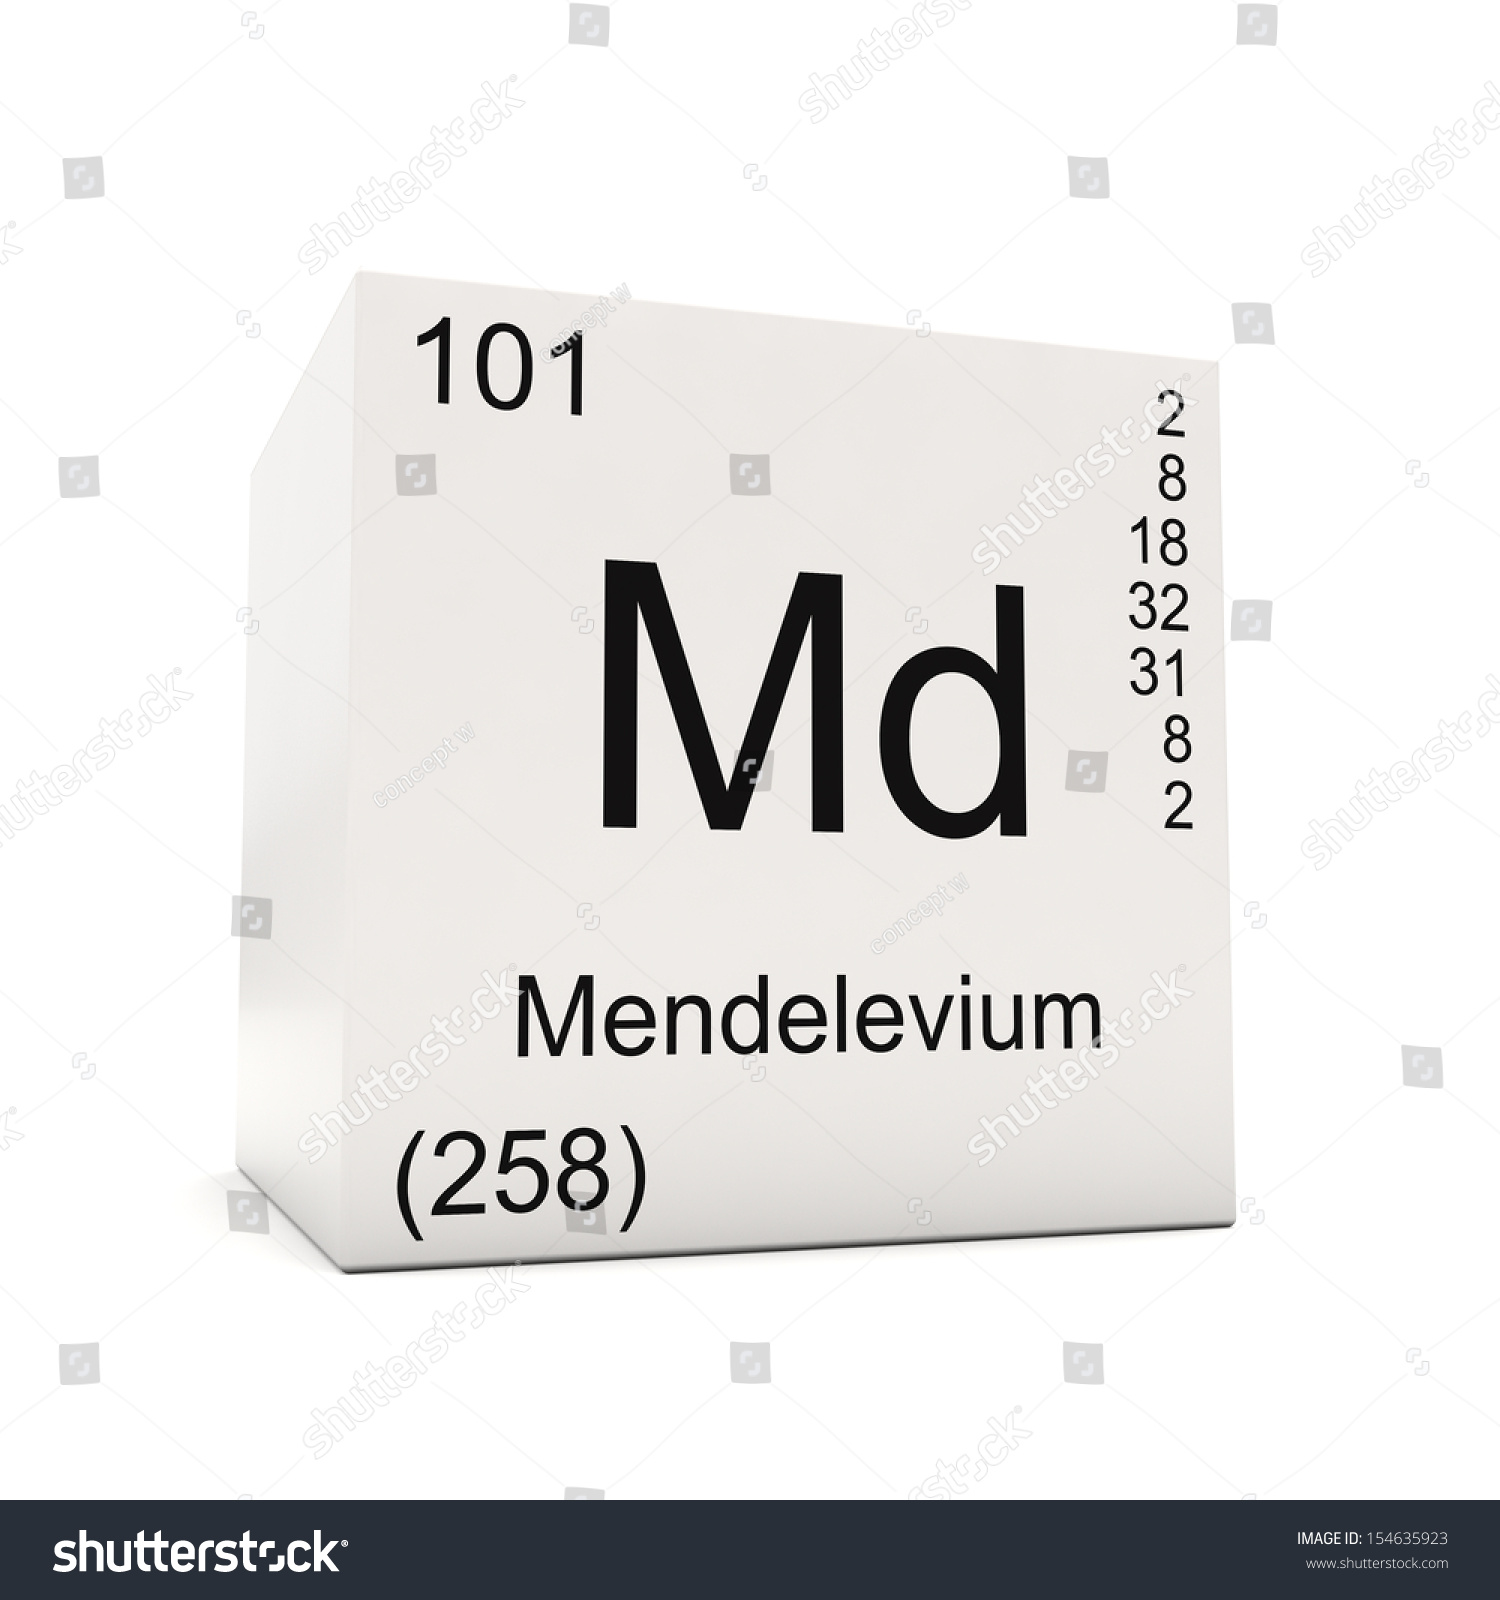 Co2 on the periodic table gallery periodic table images periodic table carbon monoxide gallery periodic table images mendelevium periodic table aviongoldcorp cube mendelevium element periodic gamestrikefo Choice Image